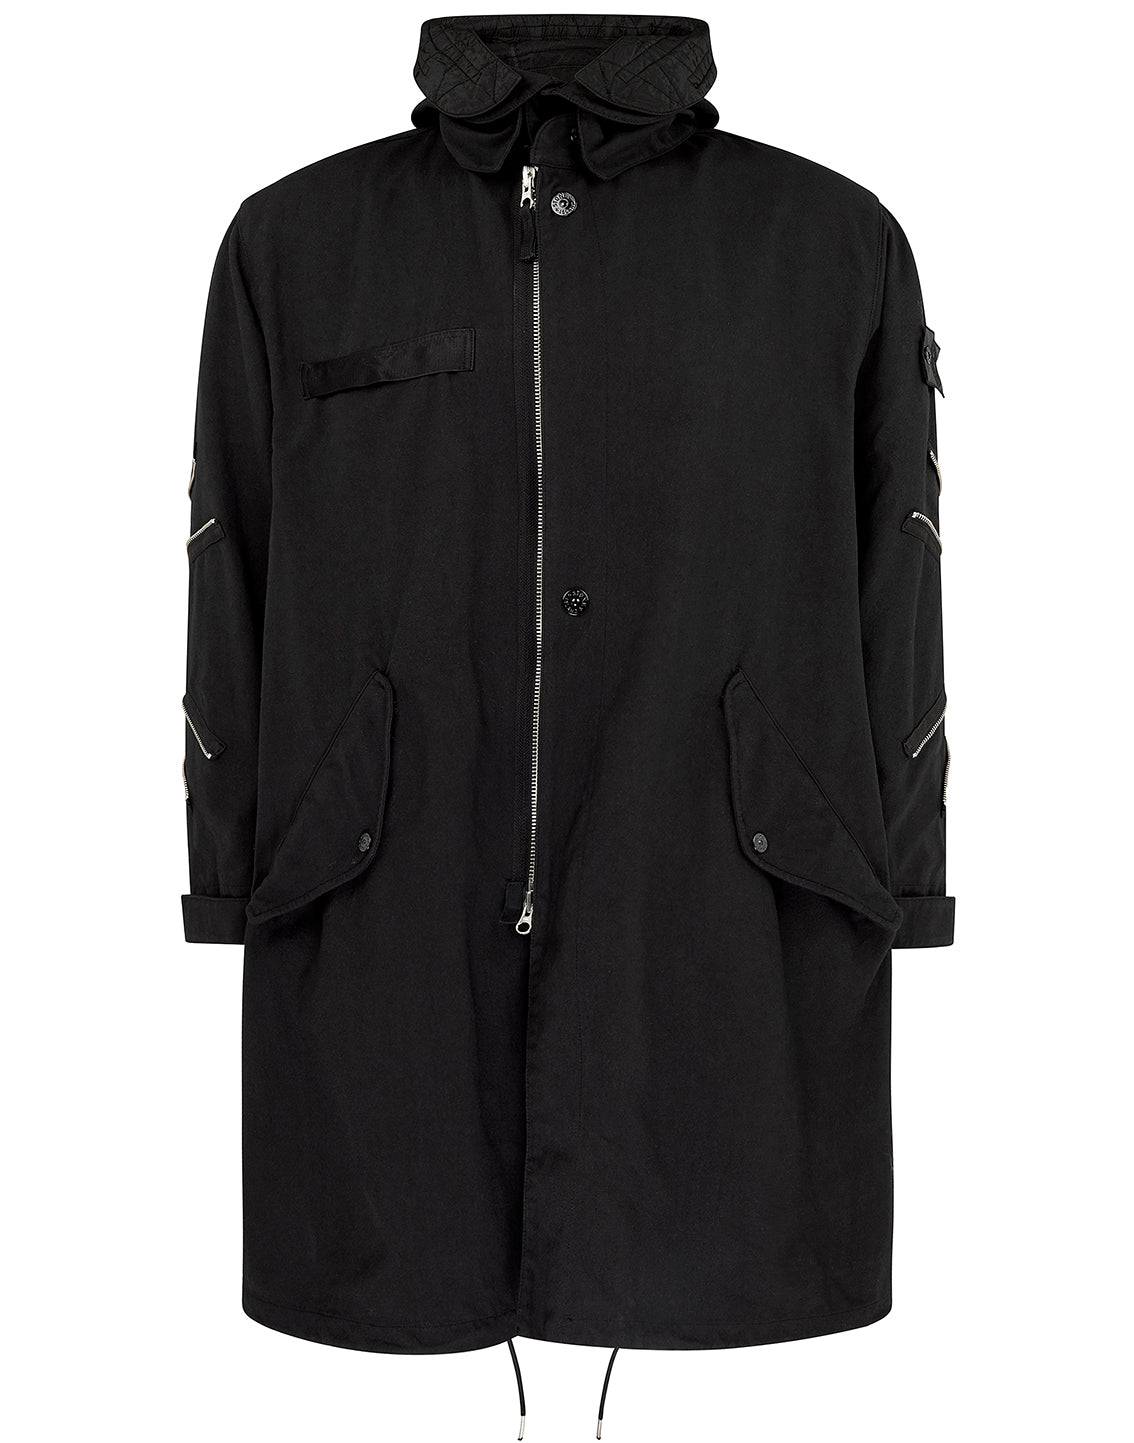 70401 OVERSIZED ARTICULATED FISHTAIL PARKA in Black